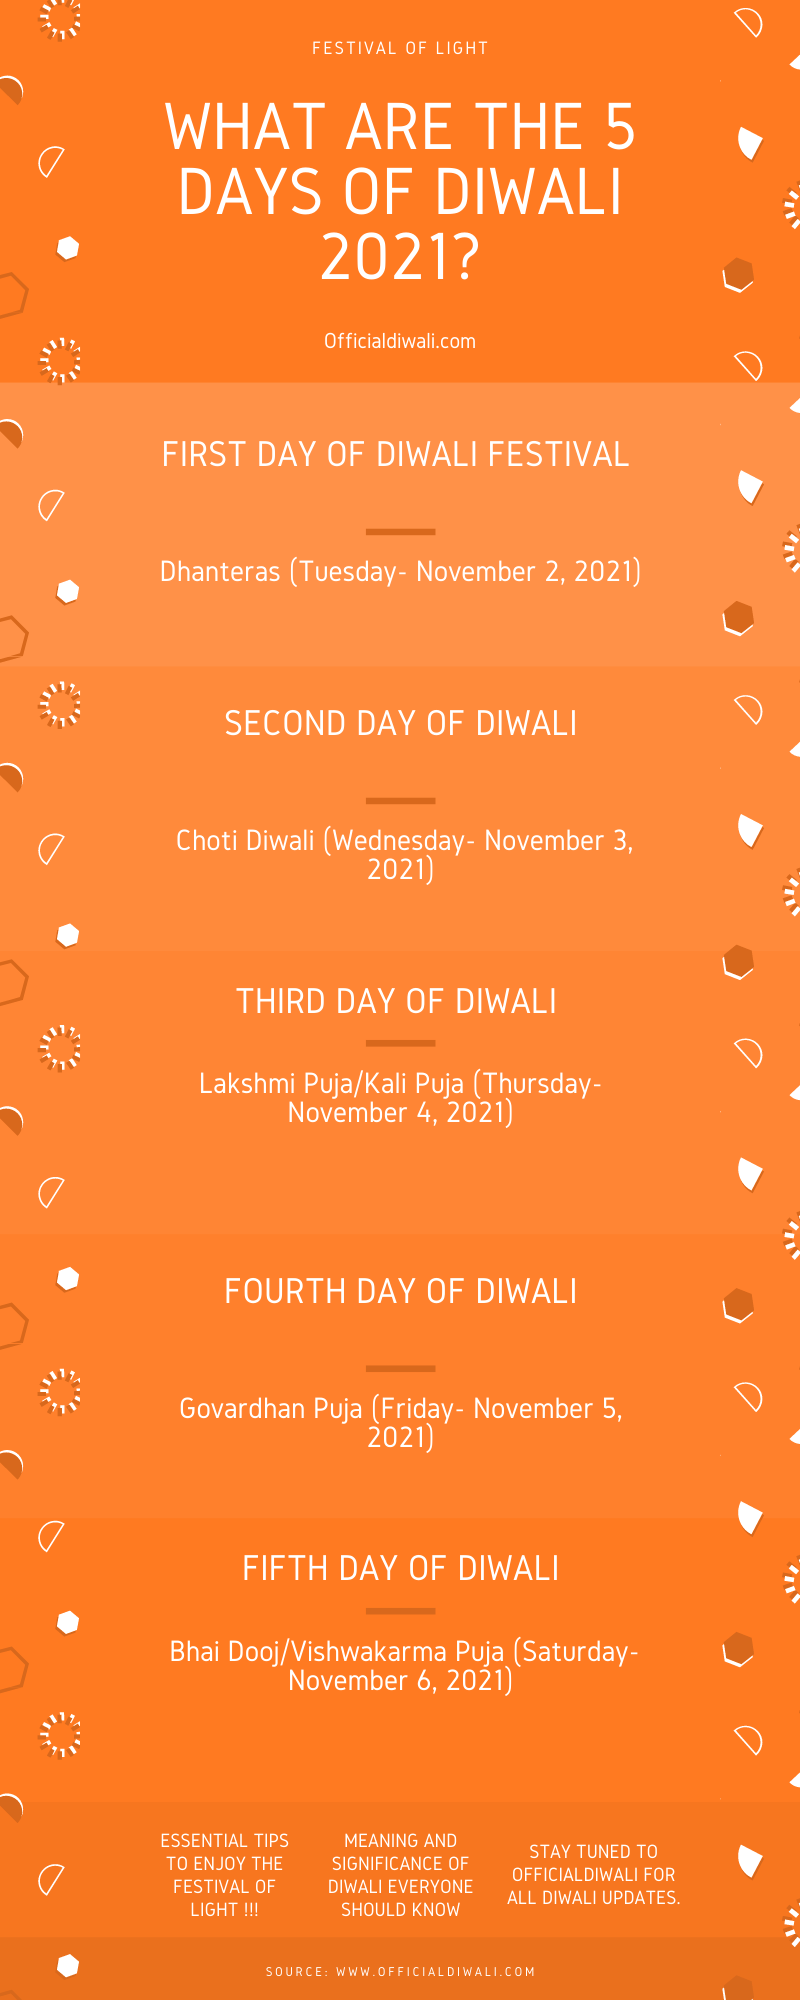 What are the 5 Days of Diwali 2021?